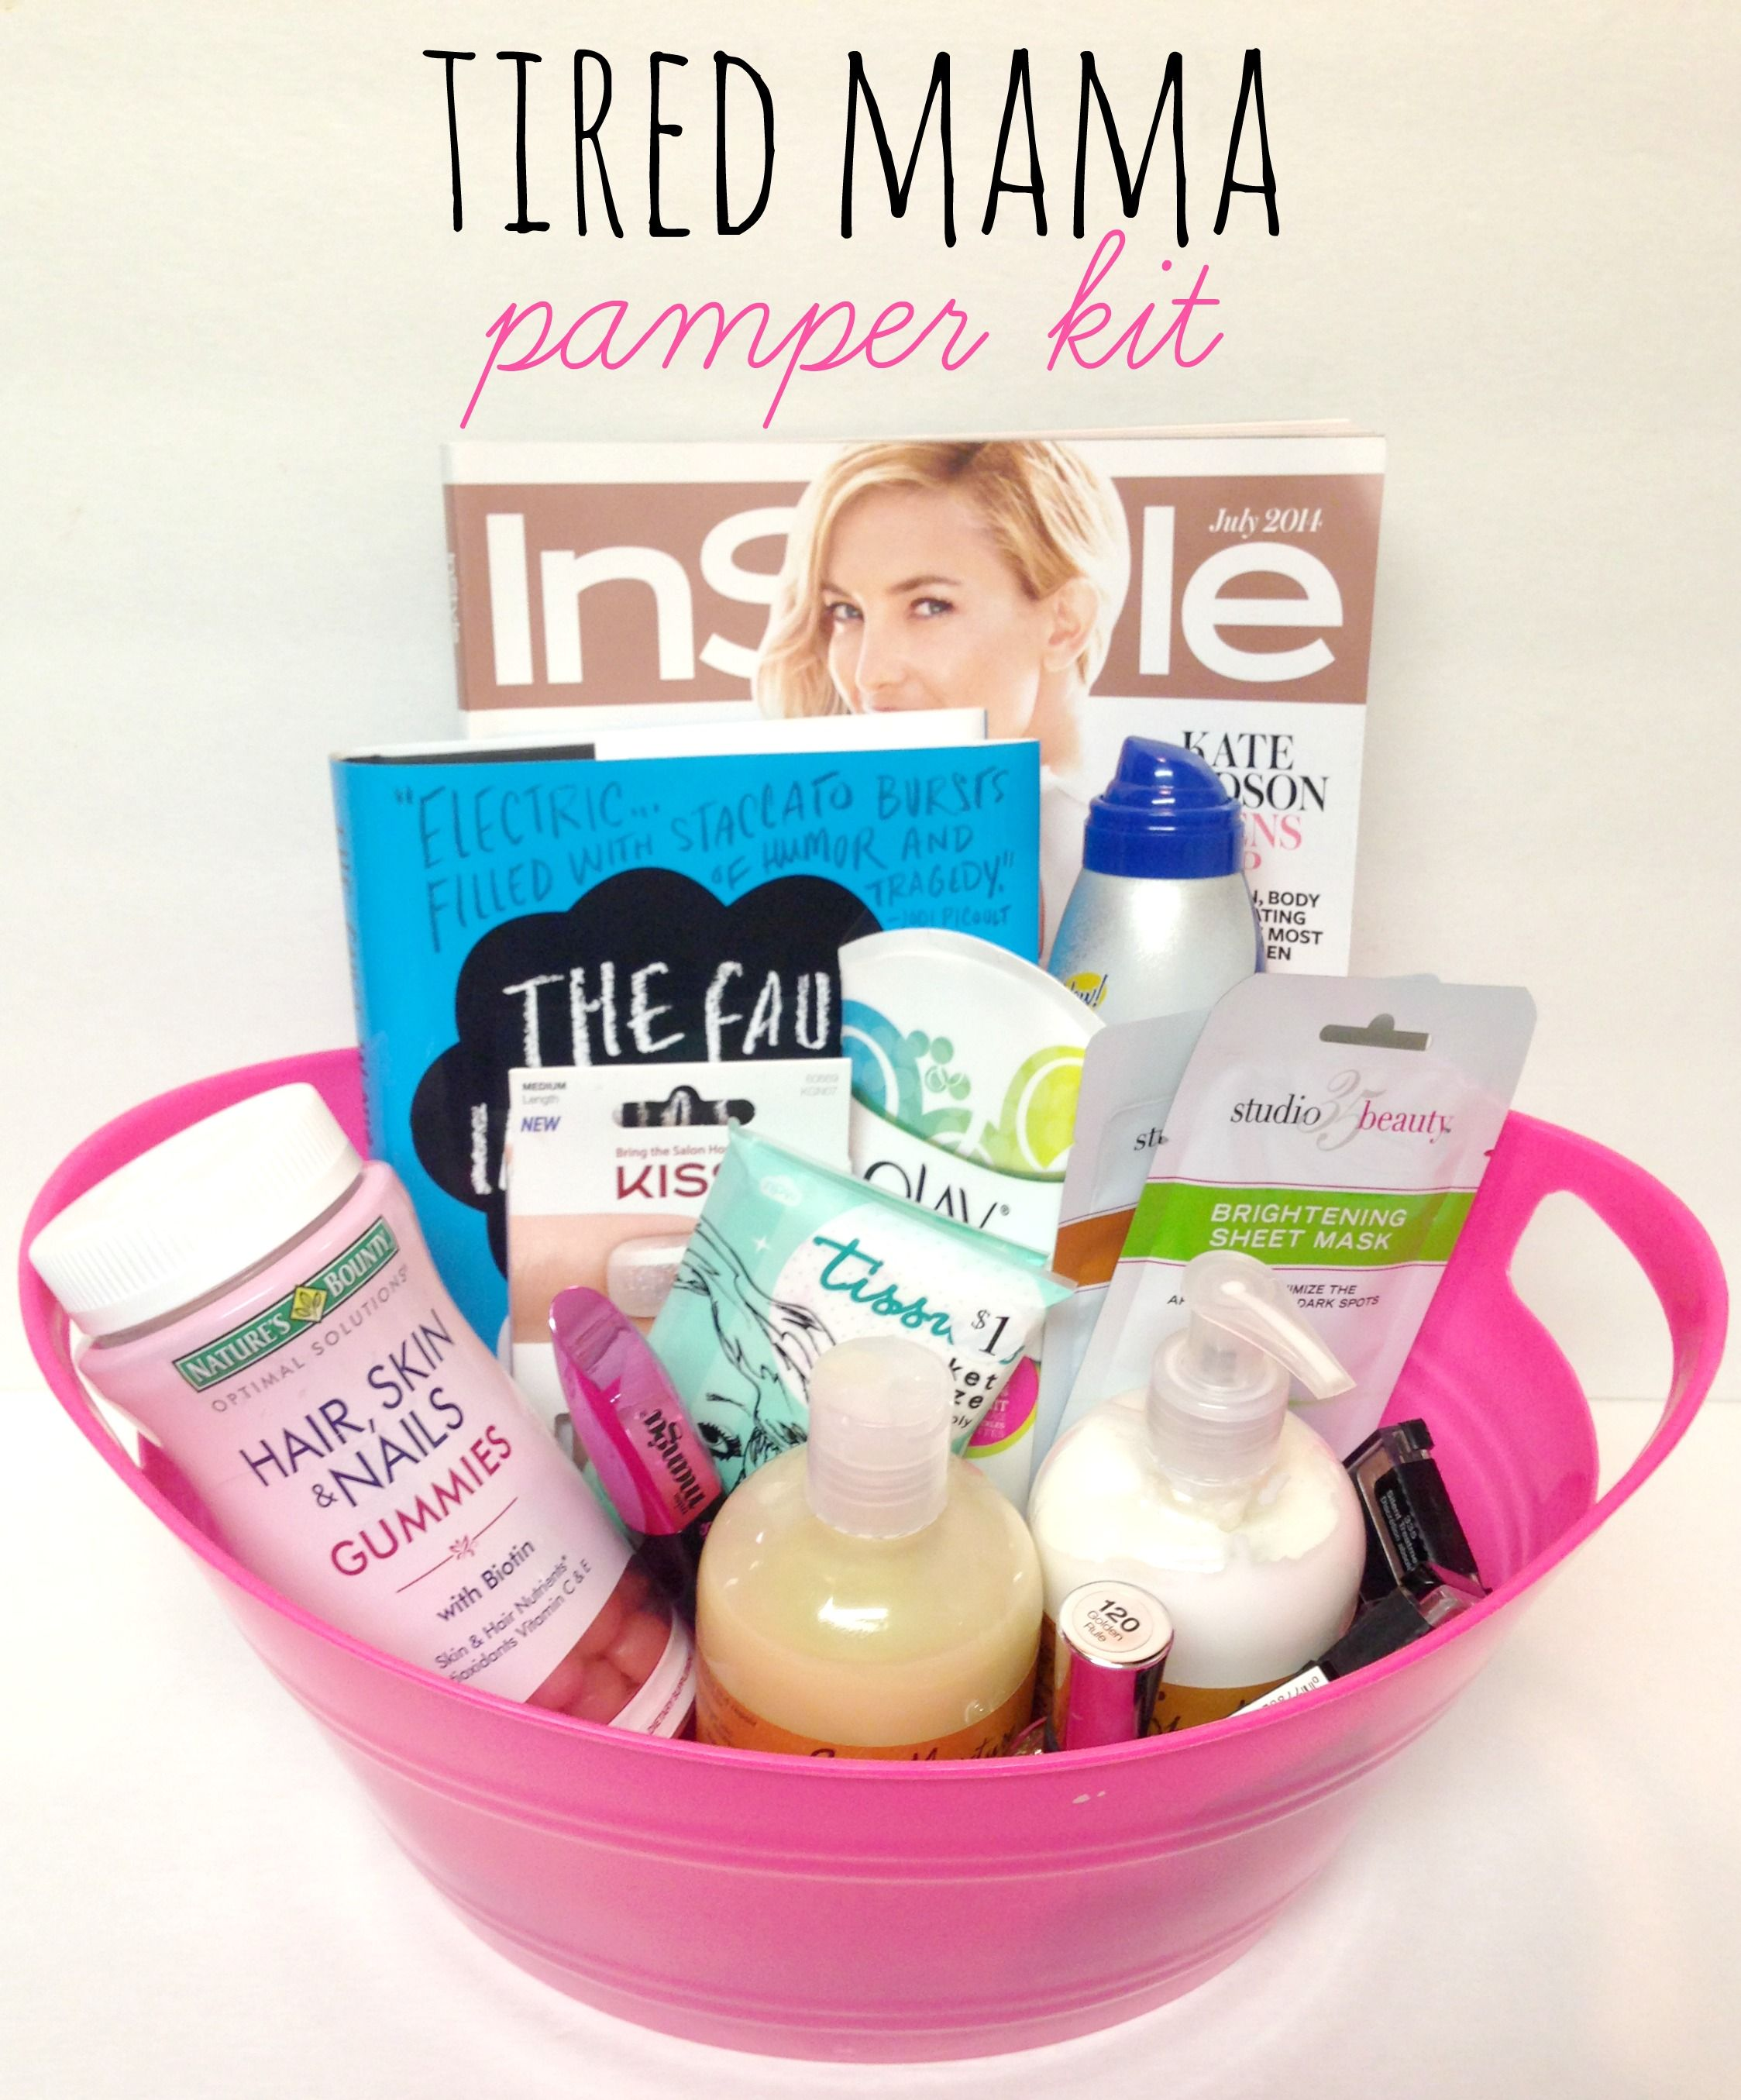 Show A Tired Mama You Care For Herhealth Like Roberta Mommy Like Whoa Sofab Shop New Mommy Gifts Mommy Gift Baby Shower Gifts